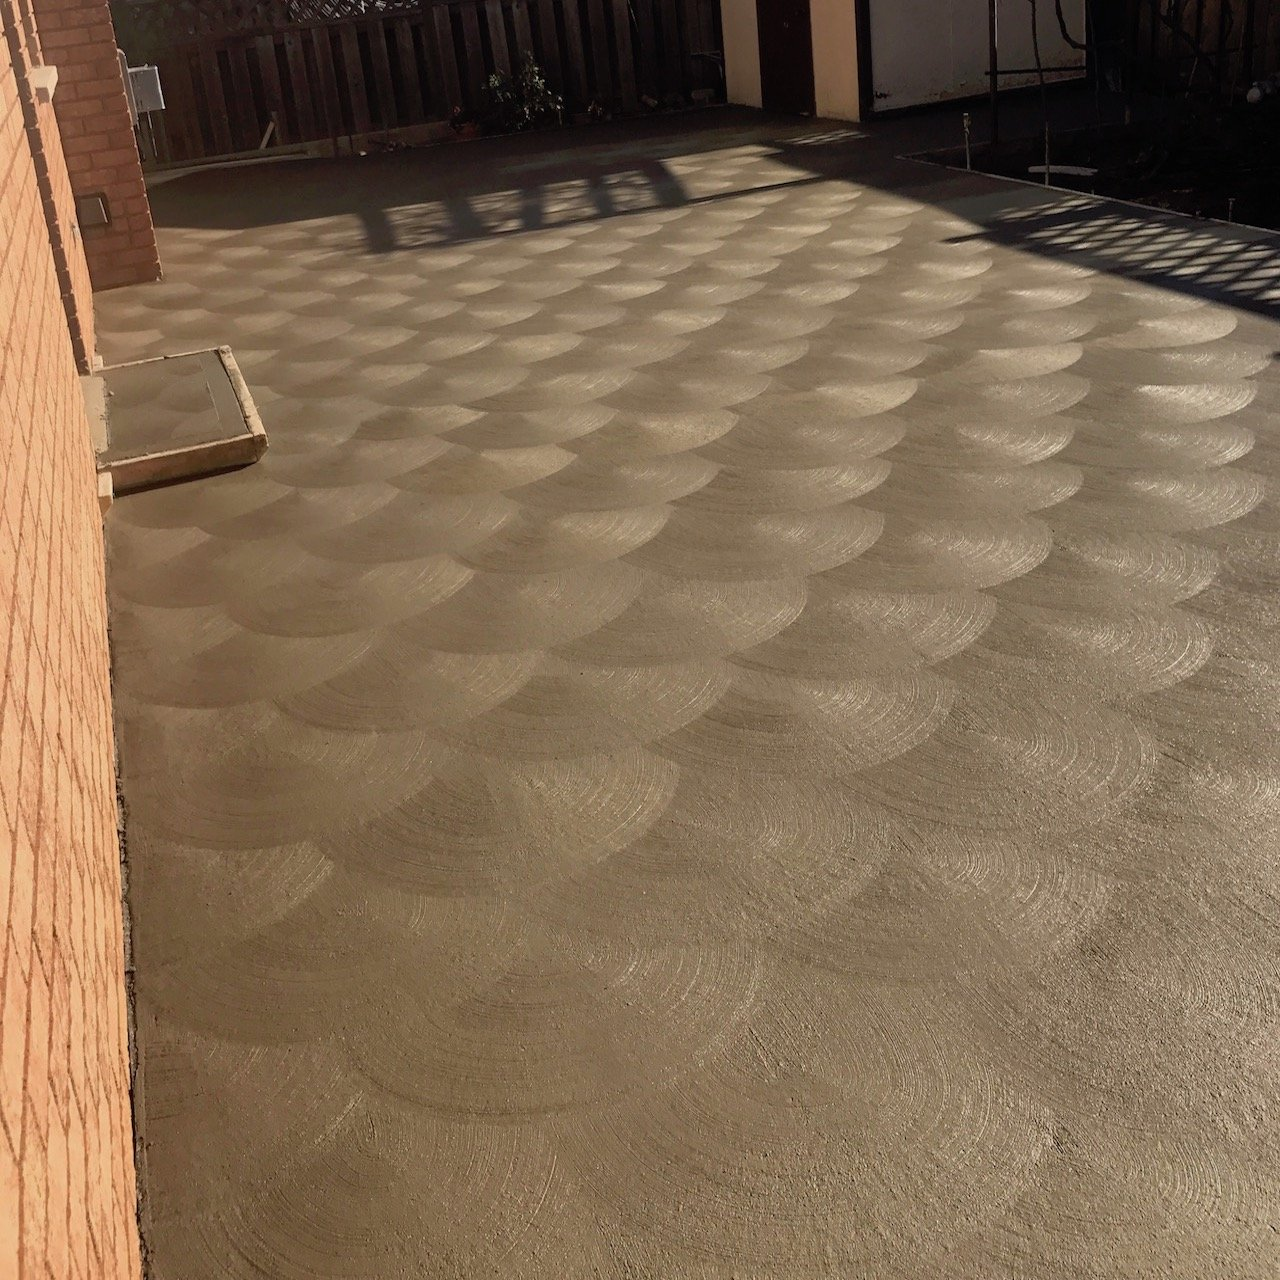 DecoMax Concrete - Concrete Patios Gallery - Regular Spin Finish - 002